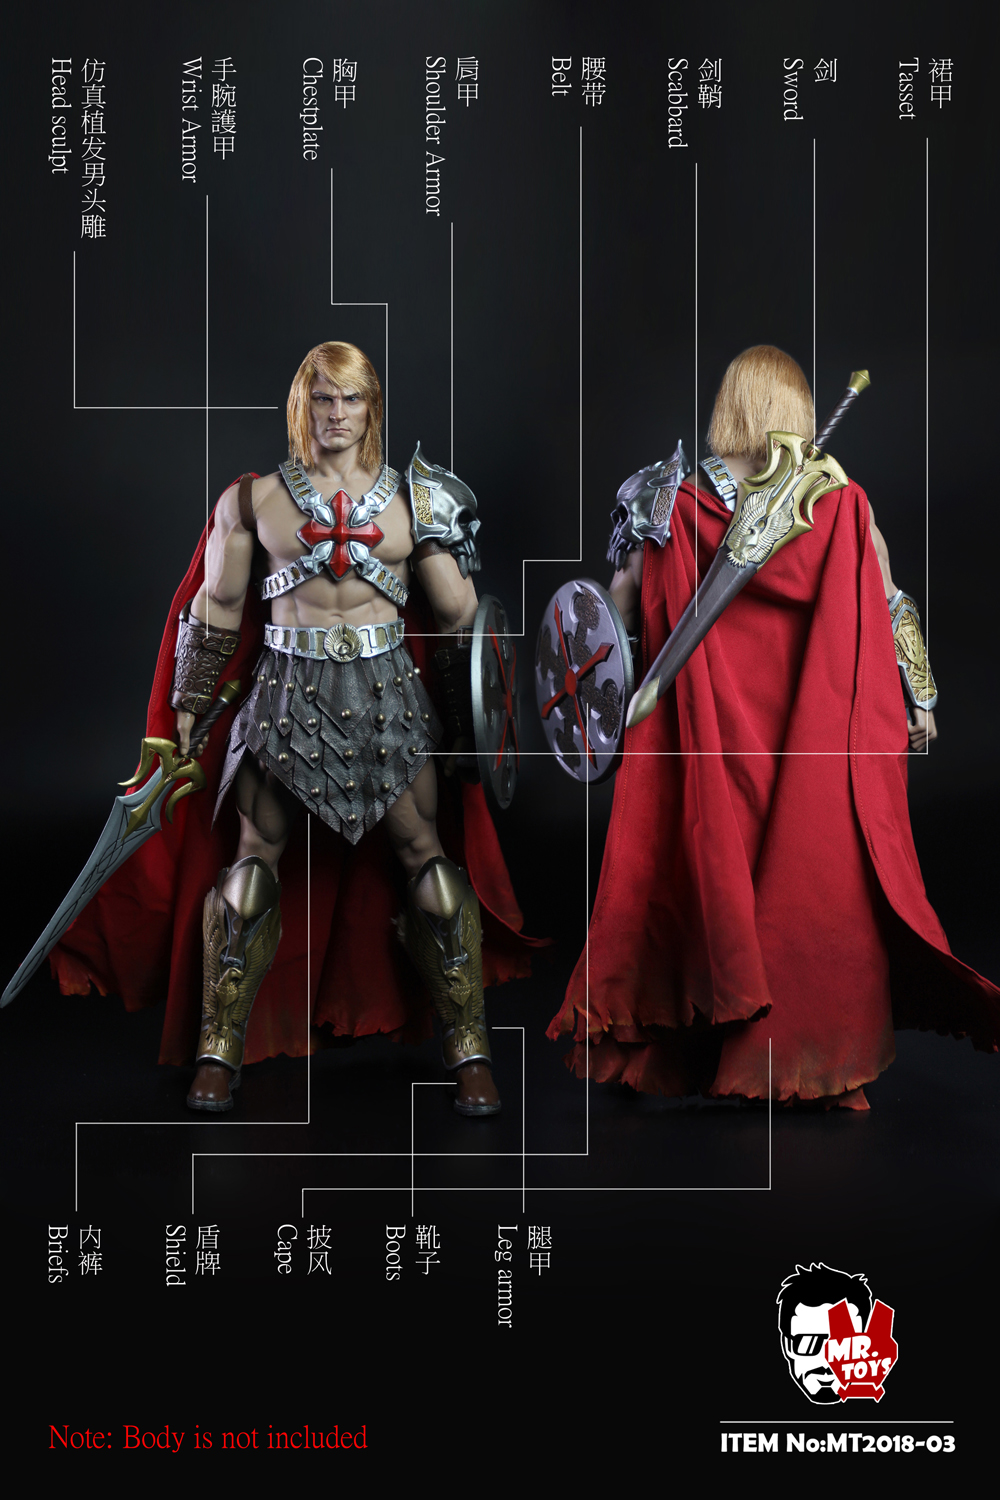 NEW PRODUCT: Mr. Toys MT2018-03 1/6 He-Man head carving costume set O1cn0133